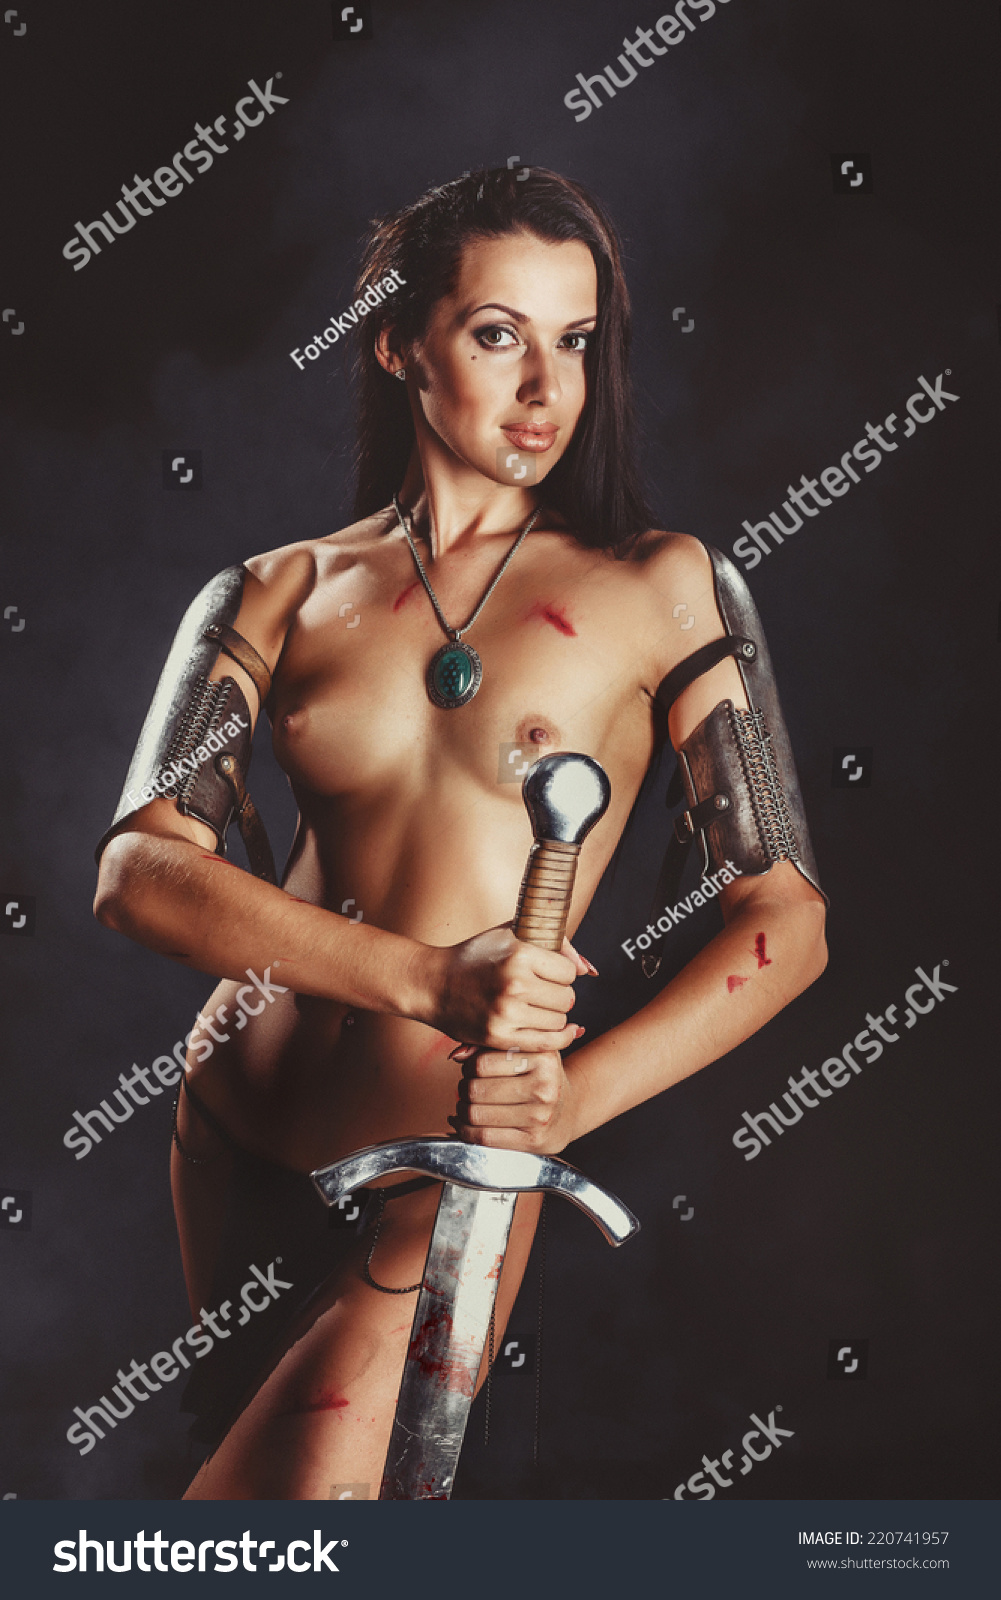 Warrior sorceress sex naked tube